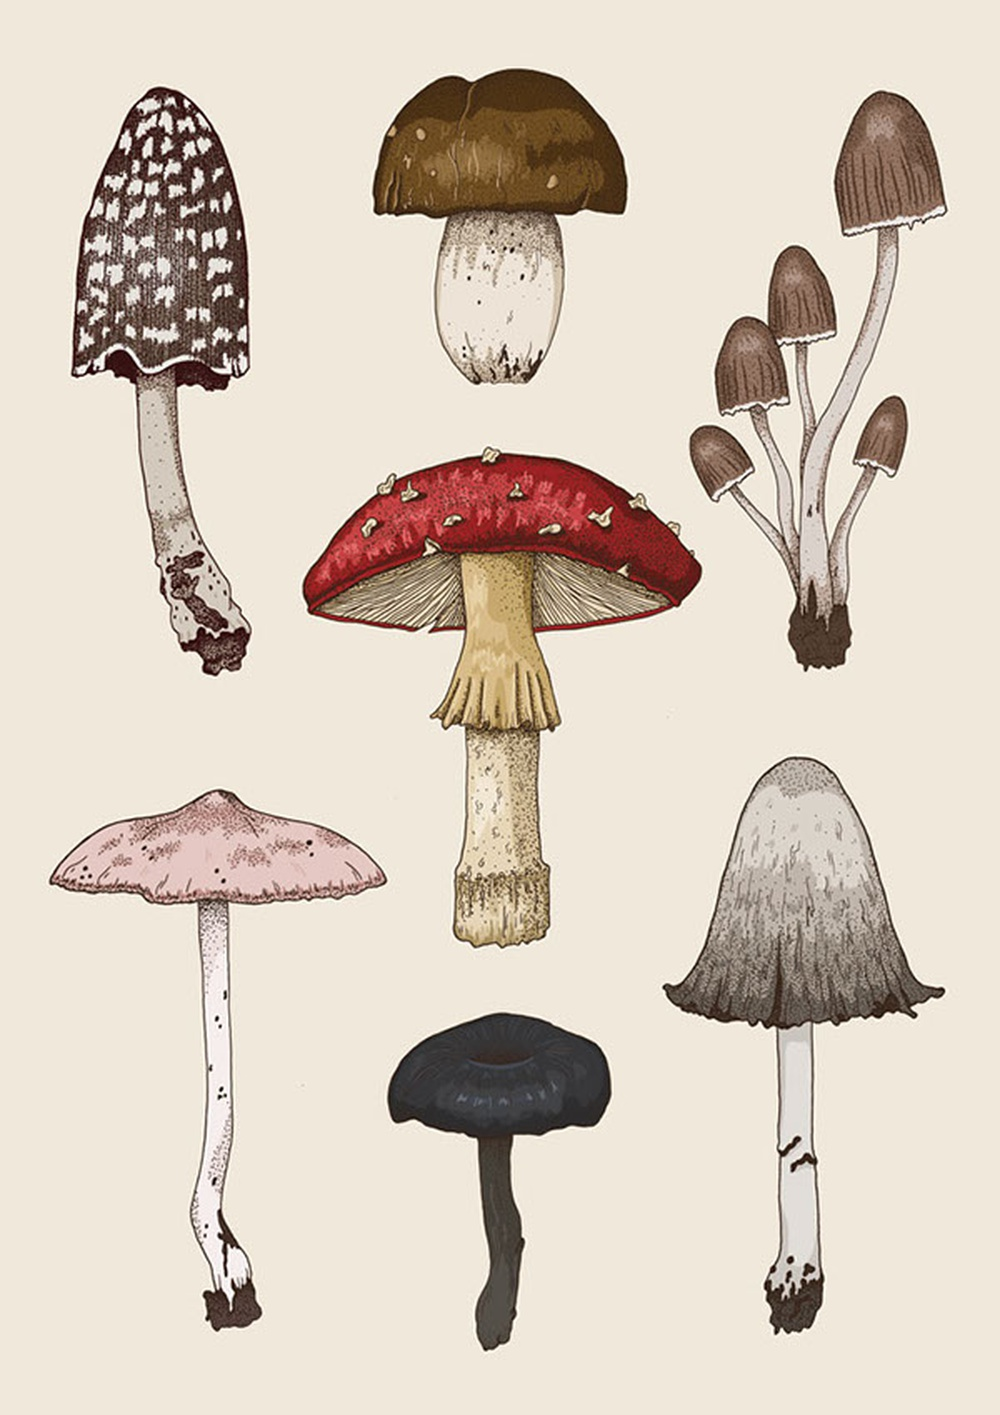 Mushrooms are great recyclers of the world